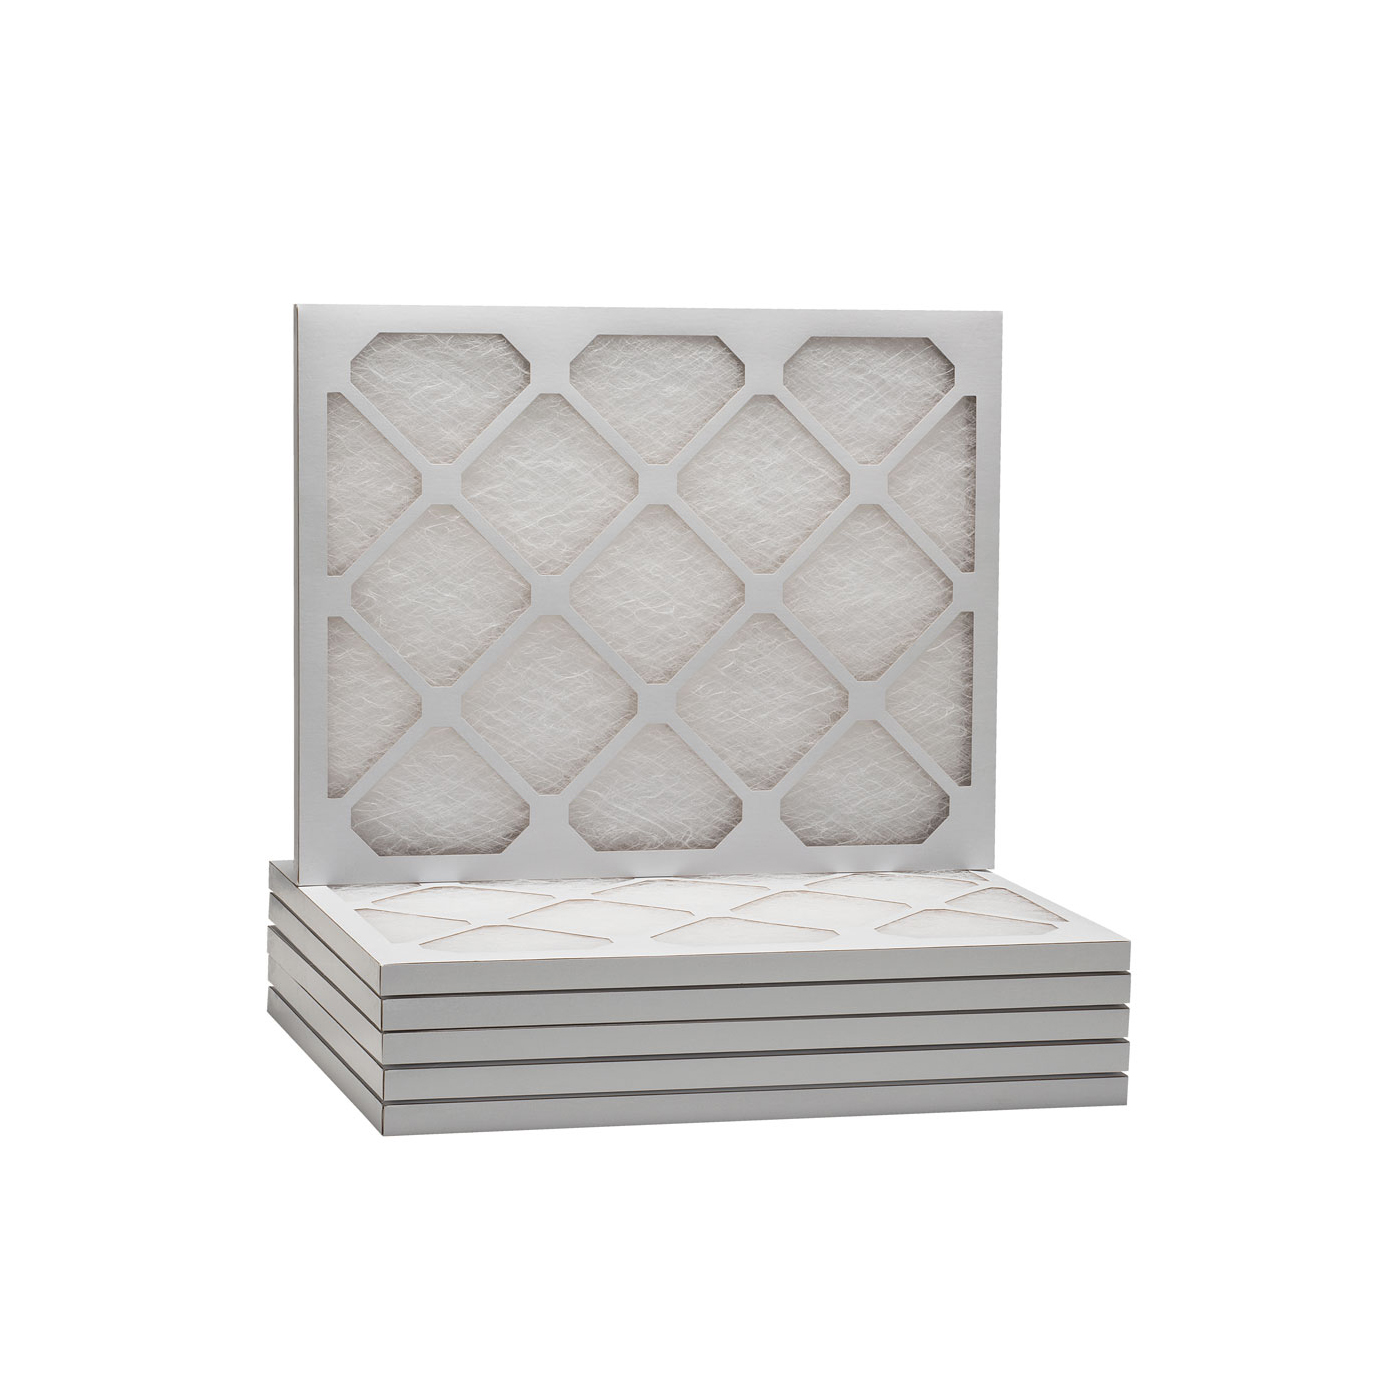 Tier1 20 x 22-1/4 x 1  MERV 6 - 6 Pack Air Filters (D50S-612022D) TIER1_D50S_612022D_6_PACK